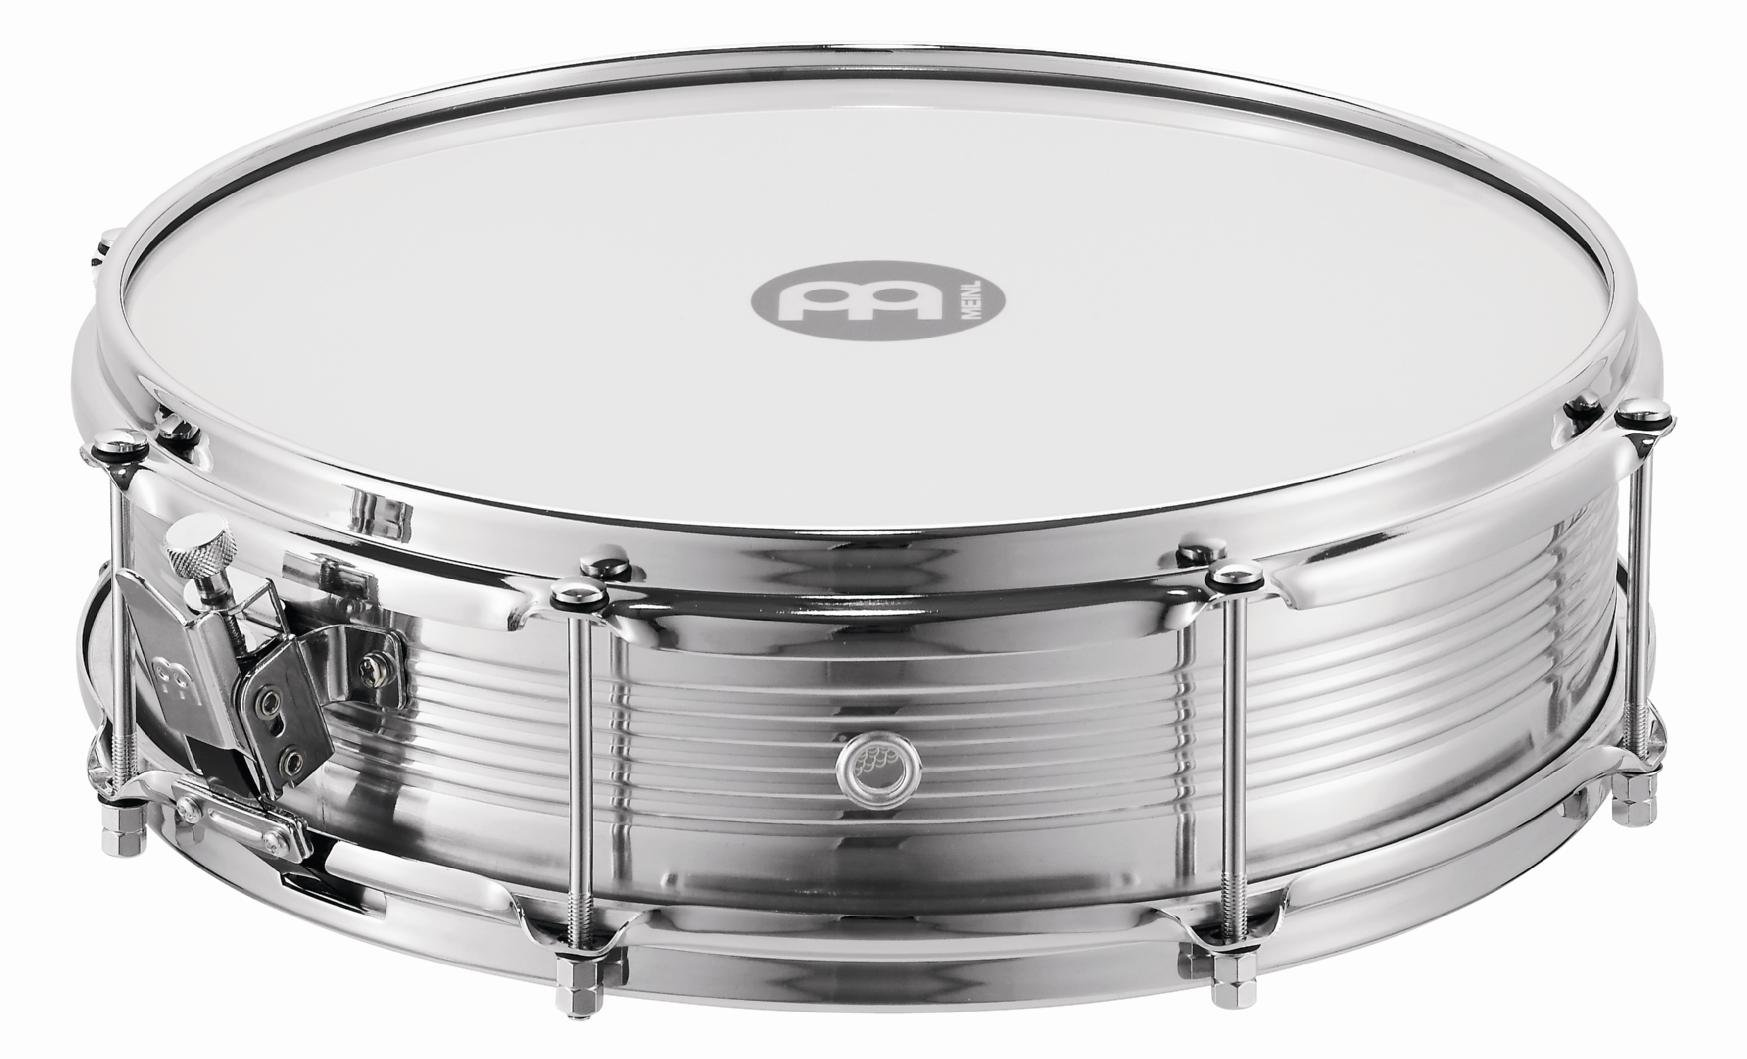 Meinl Percussion 14'' Caixa Drum with Aluminum Body - NOT MADE IN CHINA - Equipped with Steel Snare Wires and Throw-Off, 2-YEAR WARRANTY (CA14)